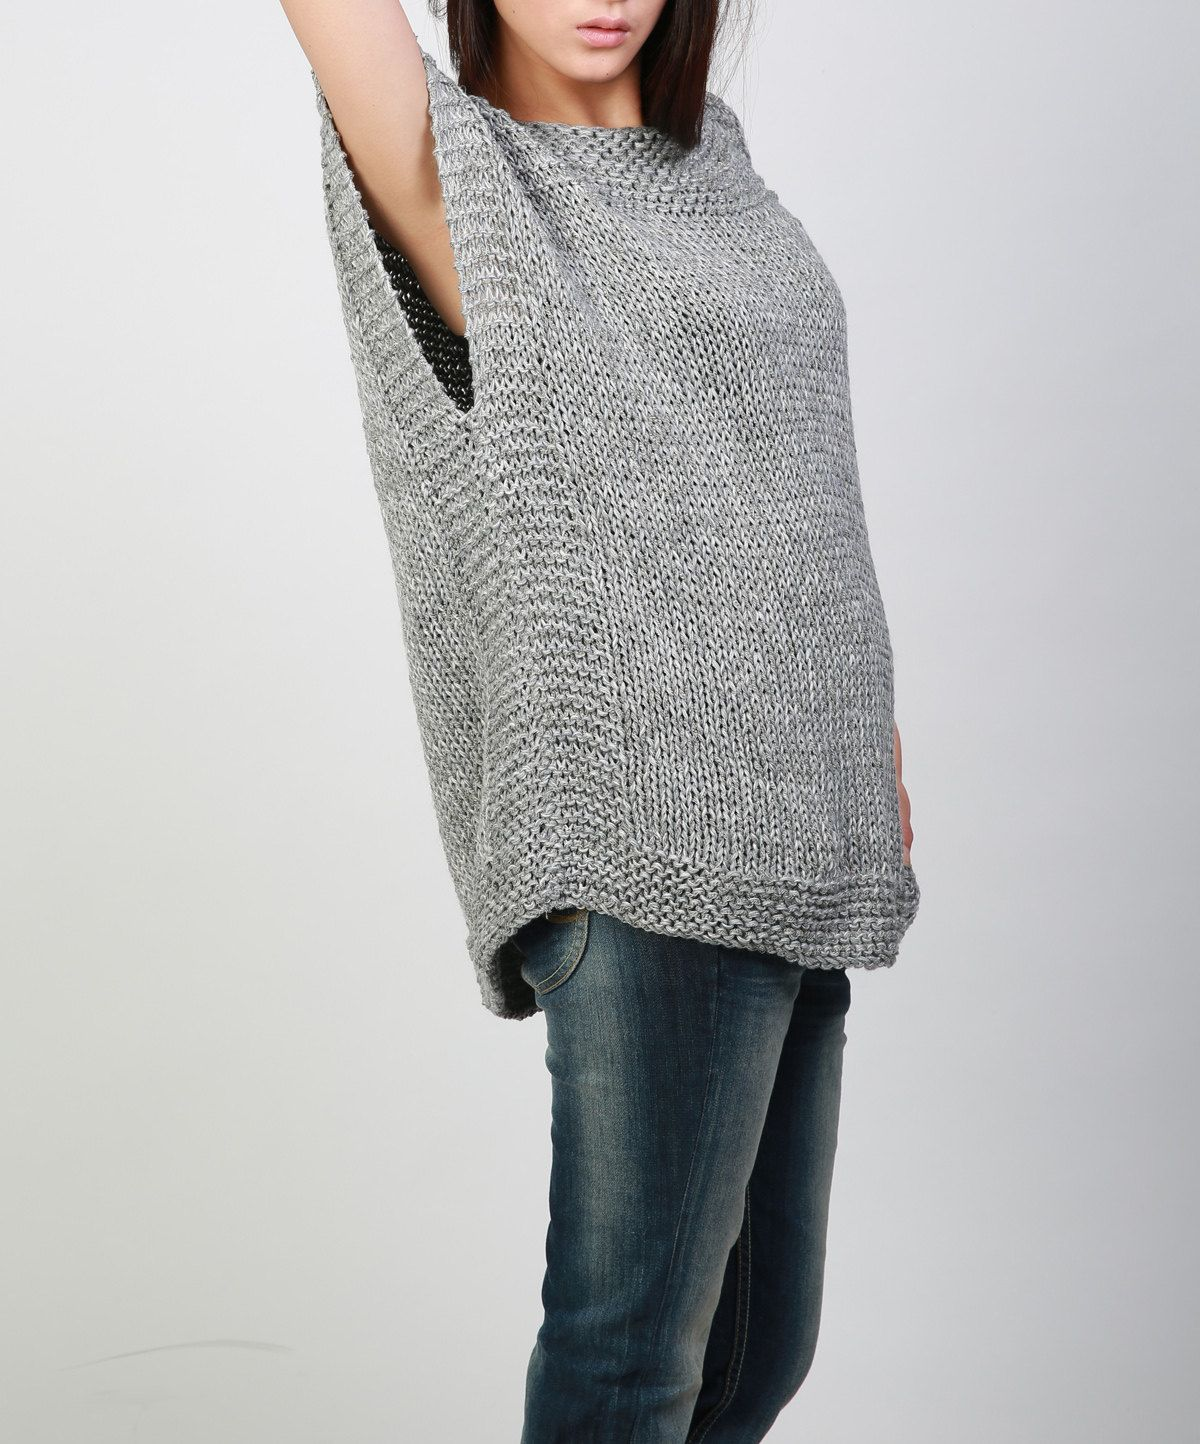 Hand knit Tunic sweater grey eco cotton woman sweater vest | Grey ...